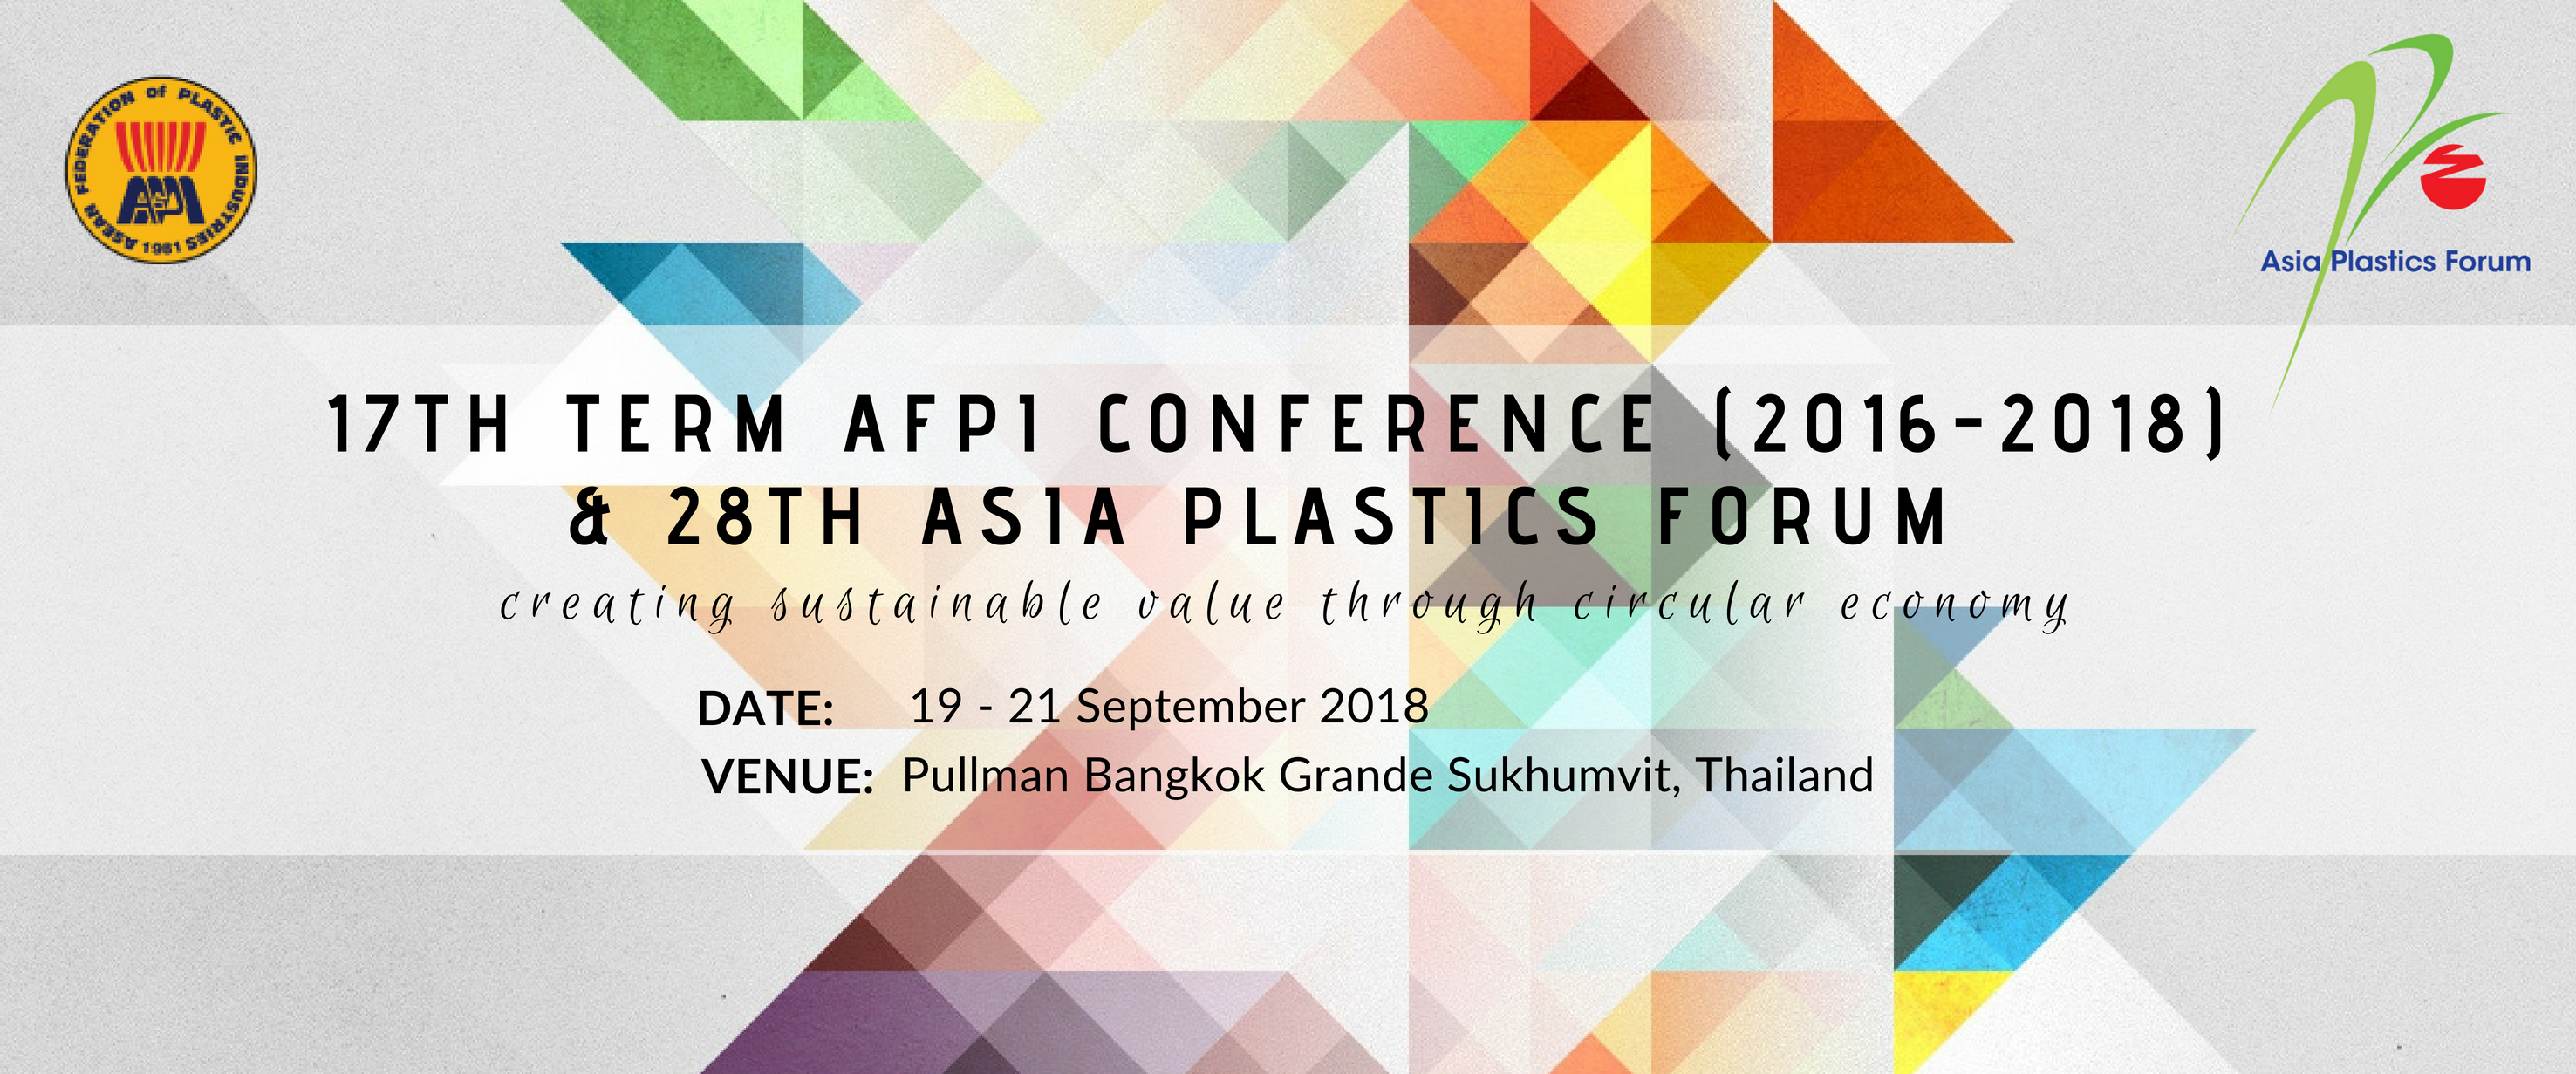 28th Asia Plastics Forum 2018 and 17th Term AFPI Conference (2016 - 2018) @ Pullman Bangkok Grande Sukhumvit, Thailand.  | กรุงเทพมหานคร | Thailand